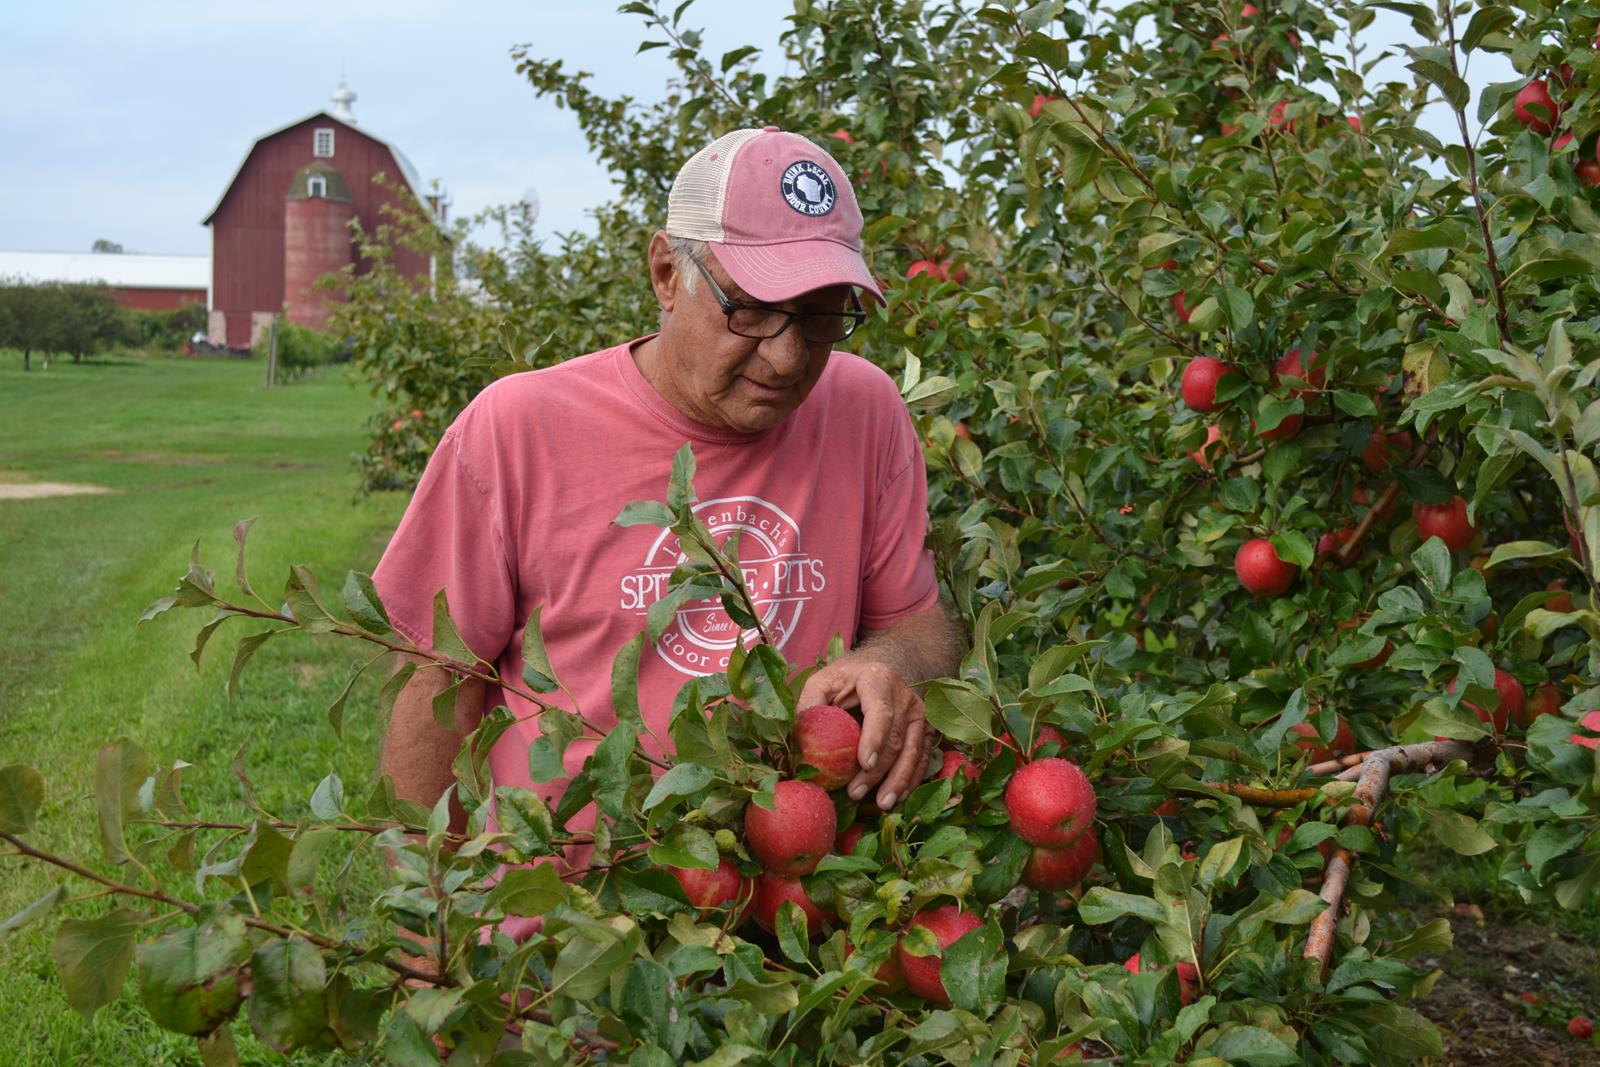 Bob Lautenbach of Lautenbach's Orchard Country Winery & Market inspects red apples in his